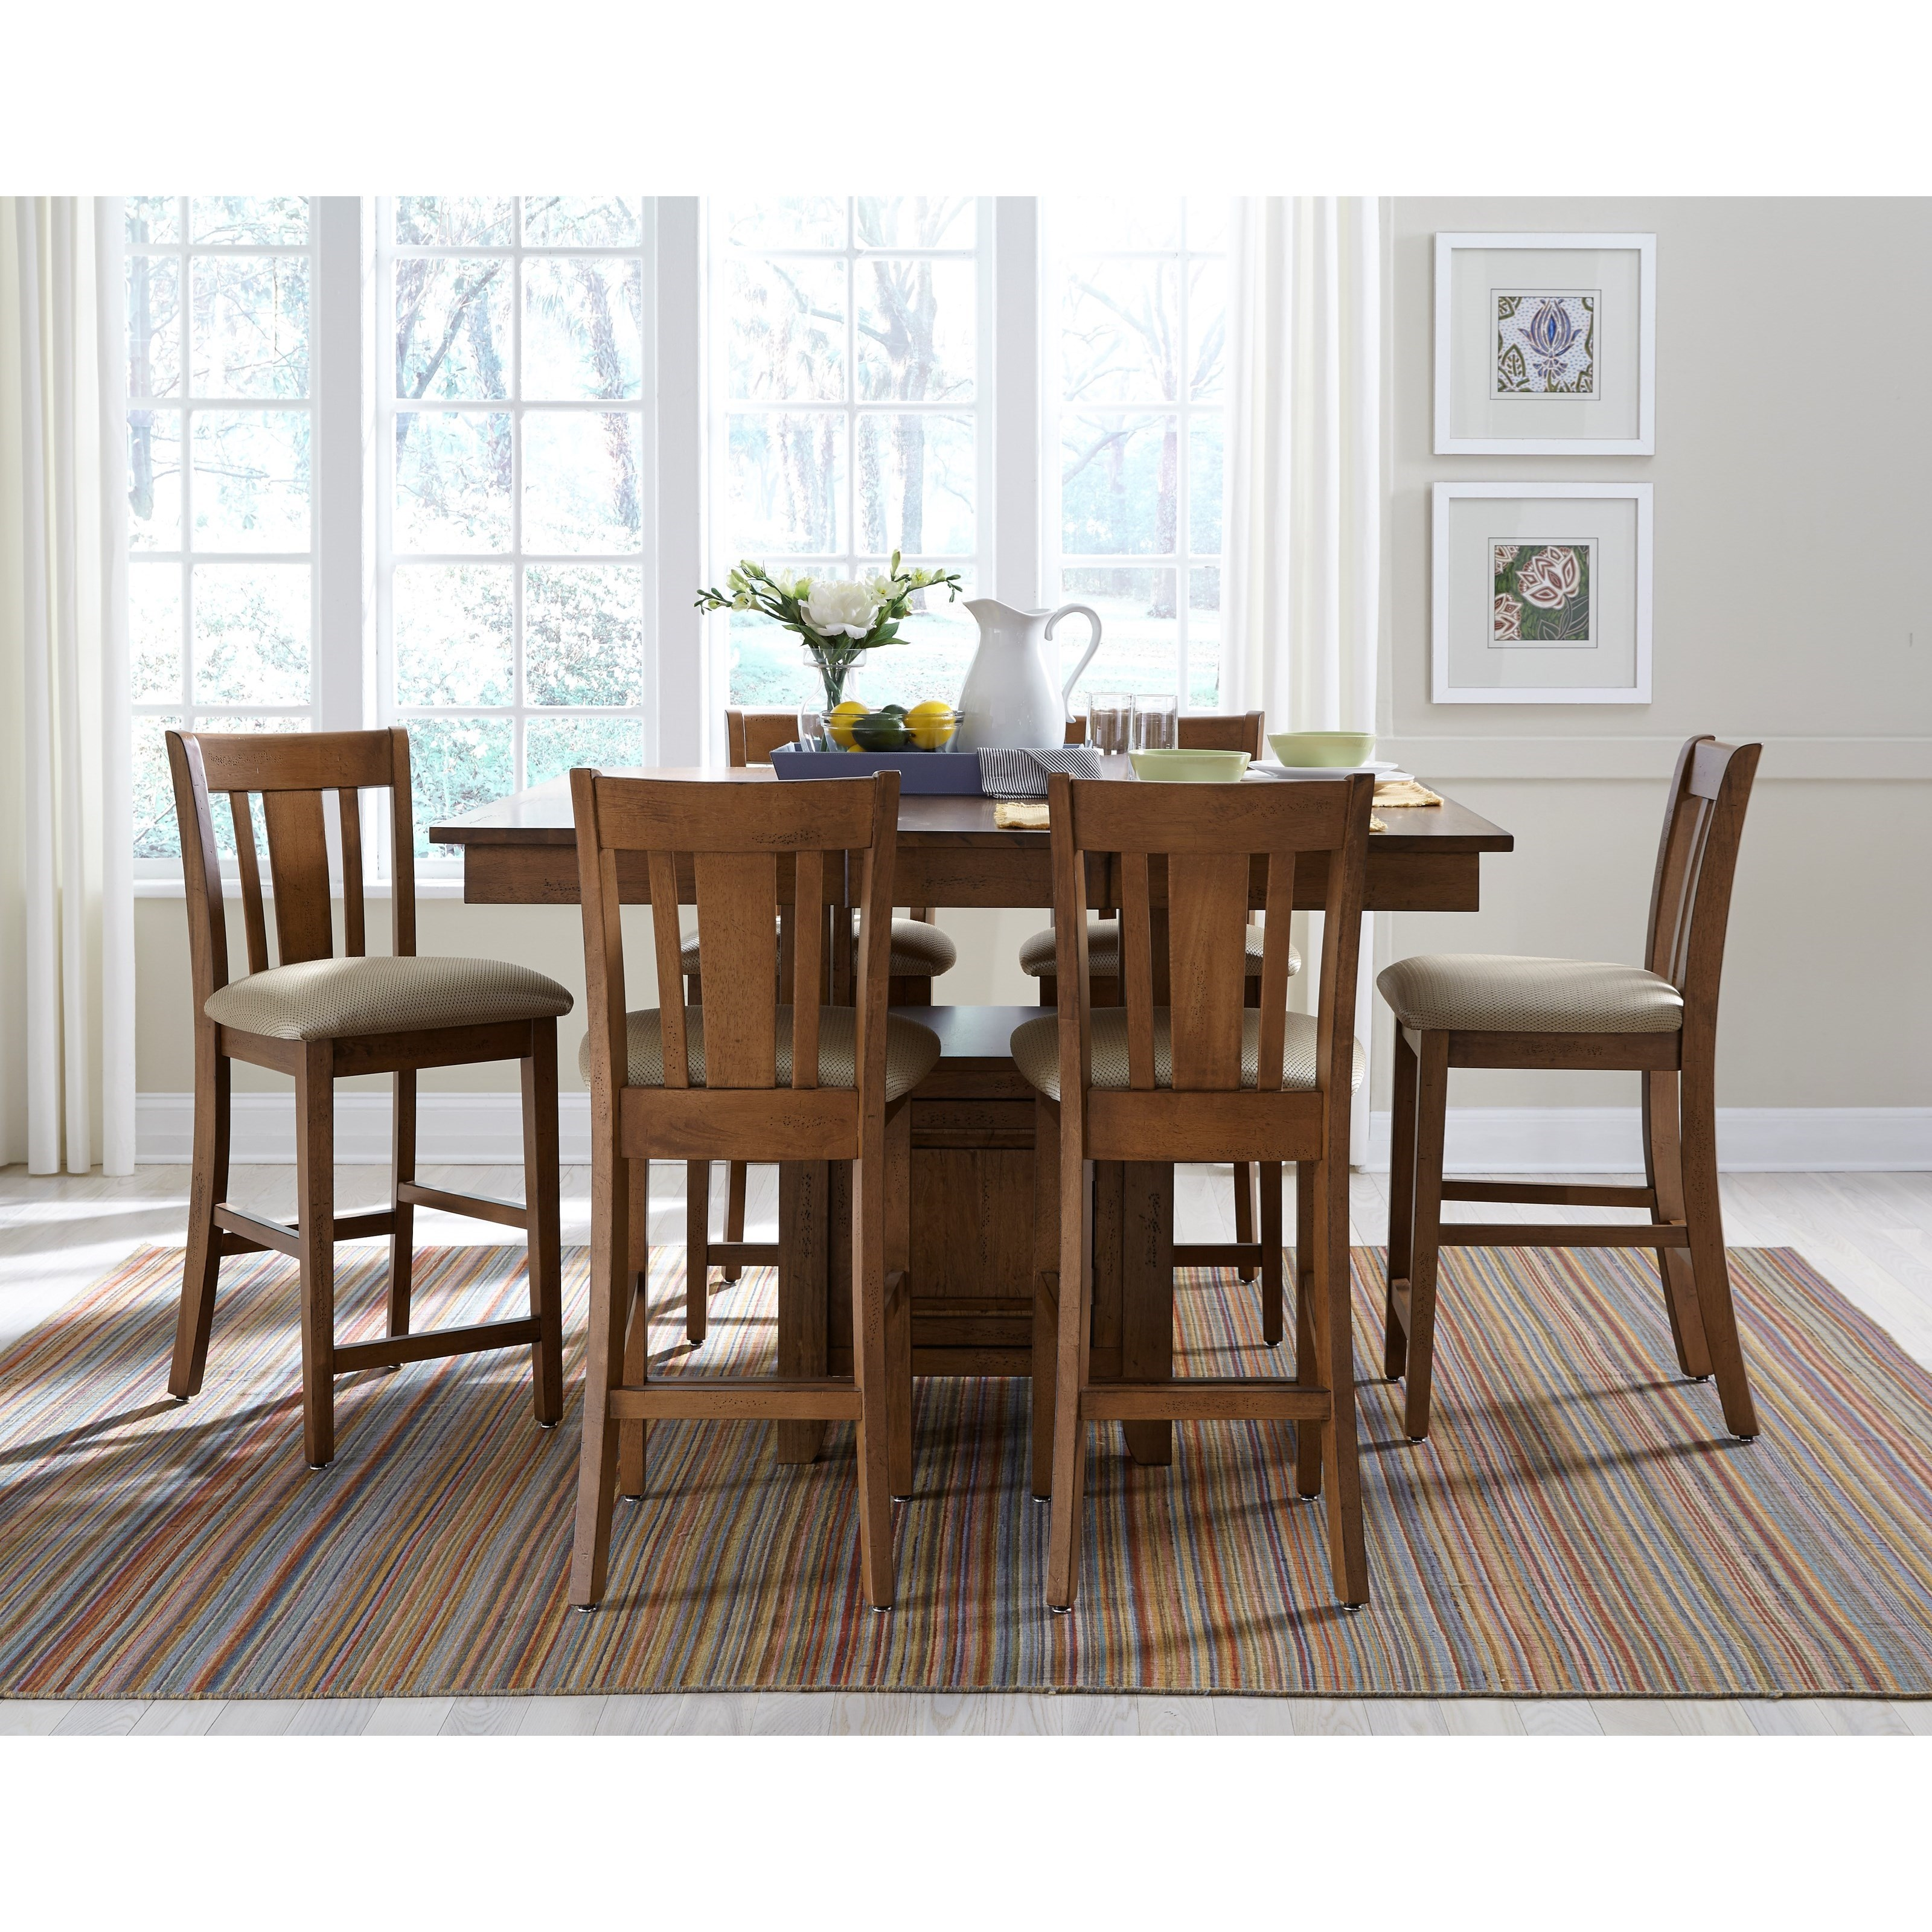 SELECT Dining Counter Height Pub Table and Chair Set by John Thomas at Baer's Furniture